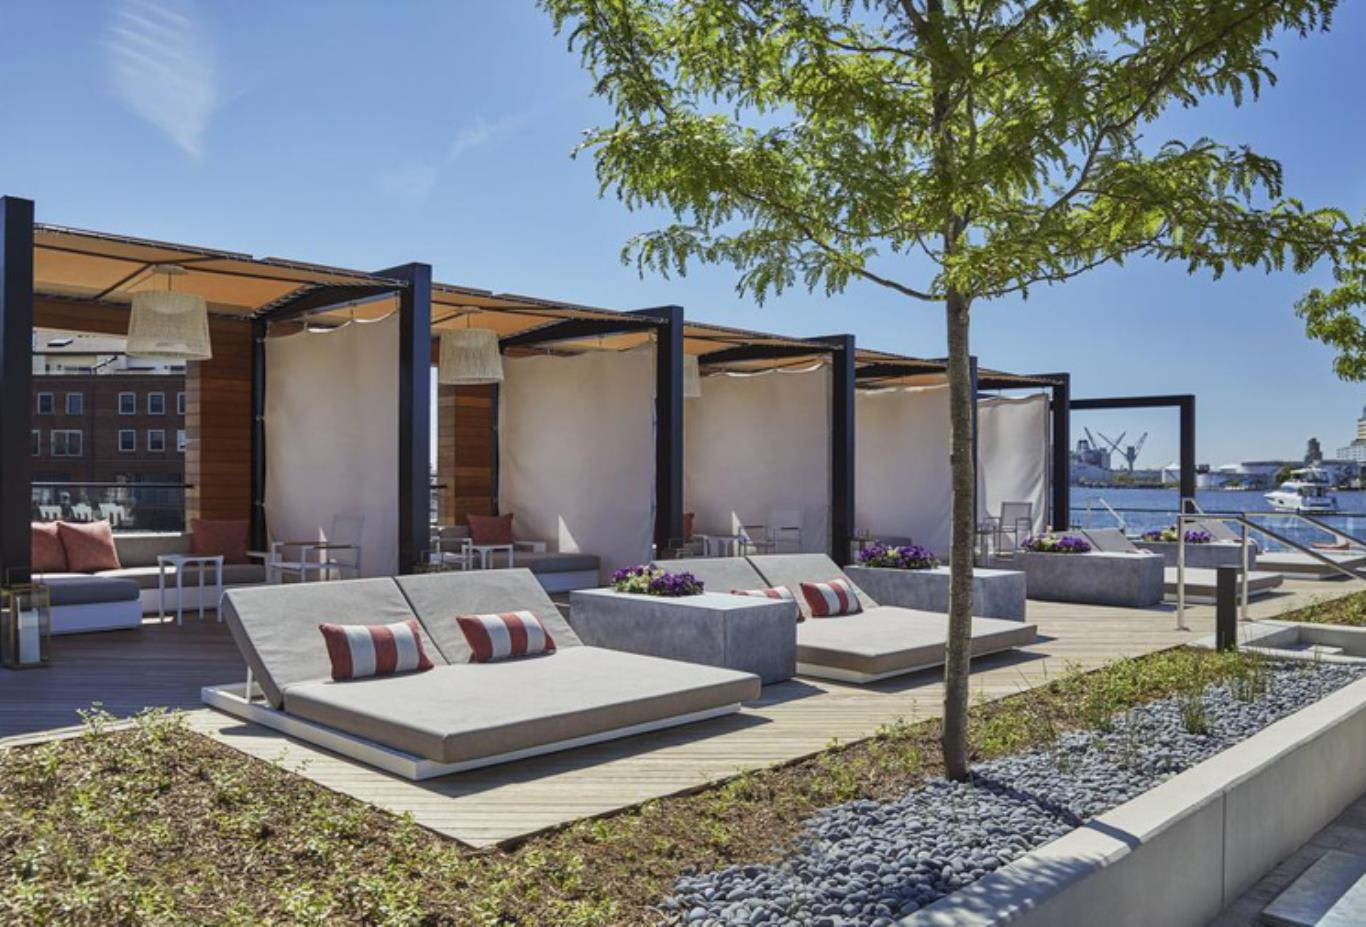 The Pool cabanas